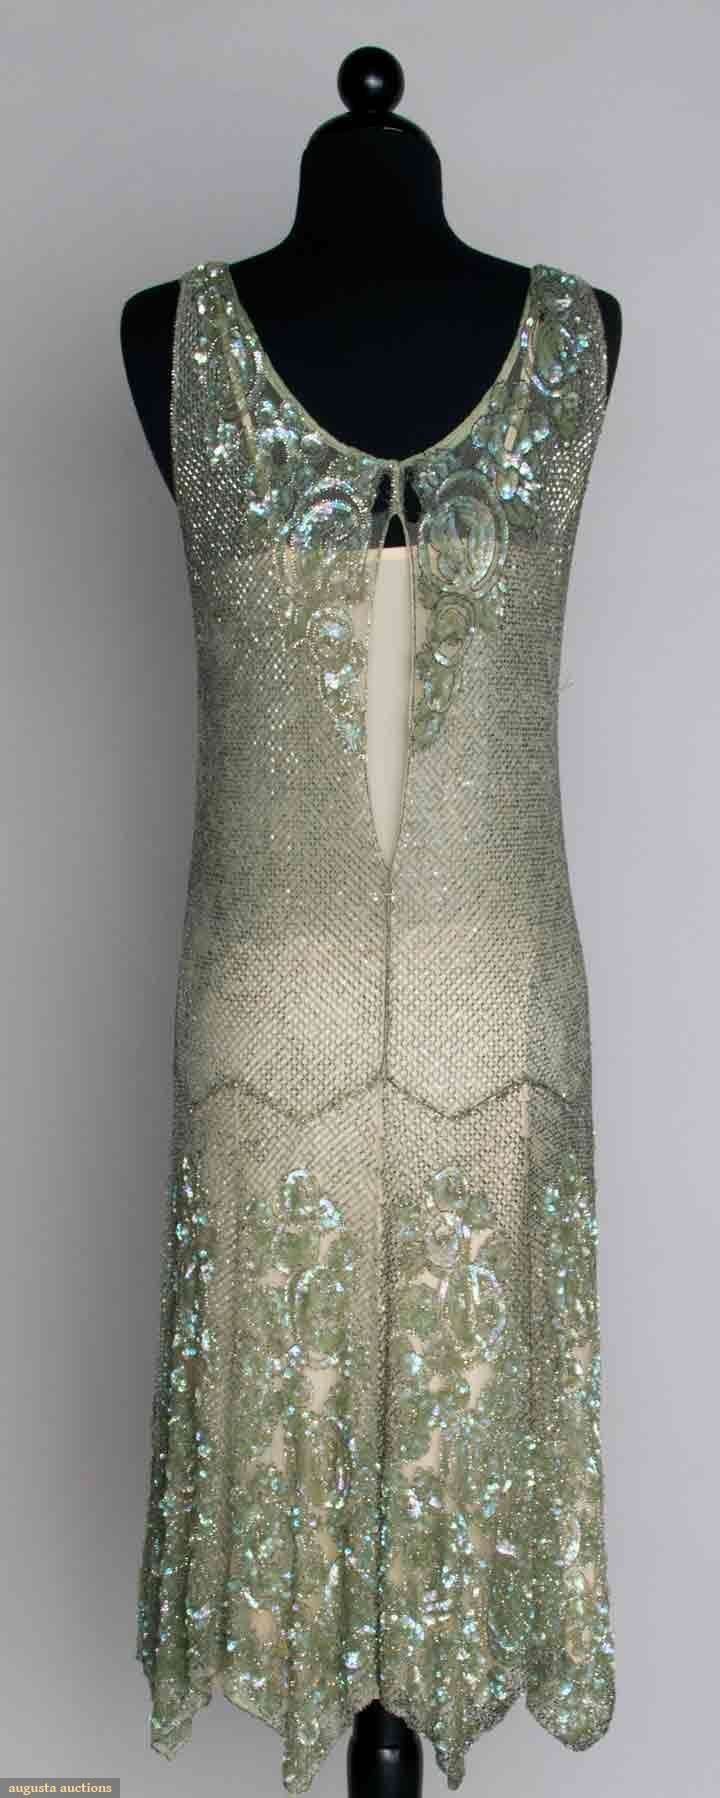 BEADED & SEQUINED DANCE DRESS, 1920s Seafoam green, silver bugle bead lattice pattern w/ irridescent sequined roses at neckline & hem. Back